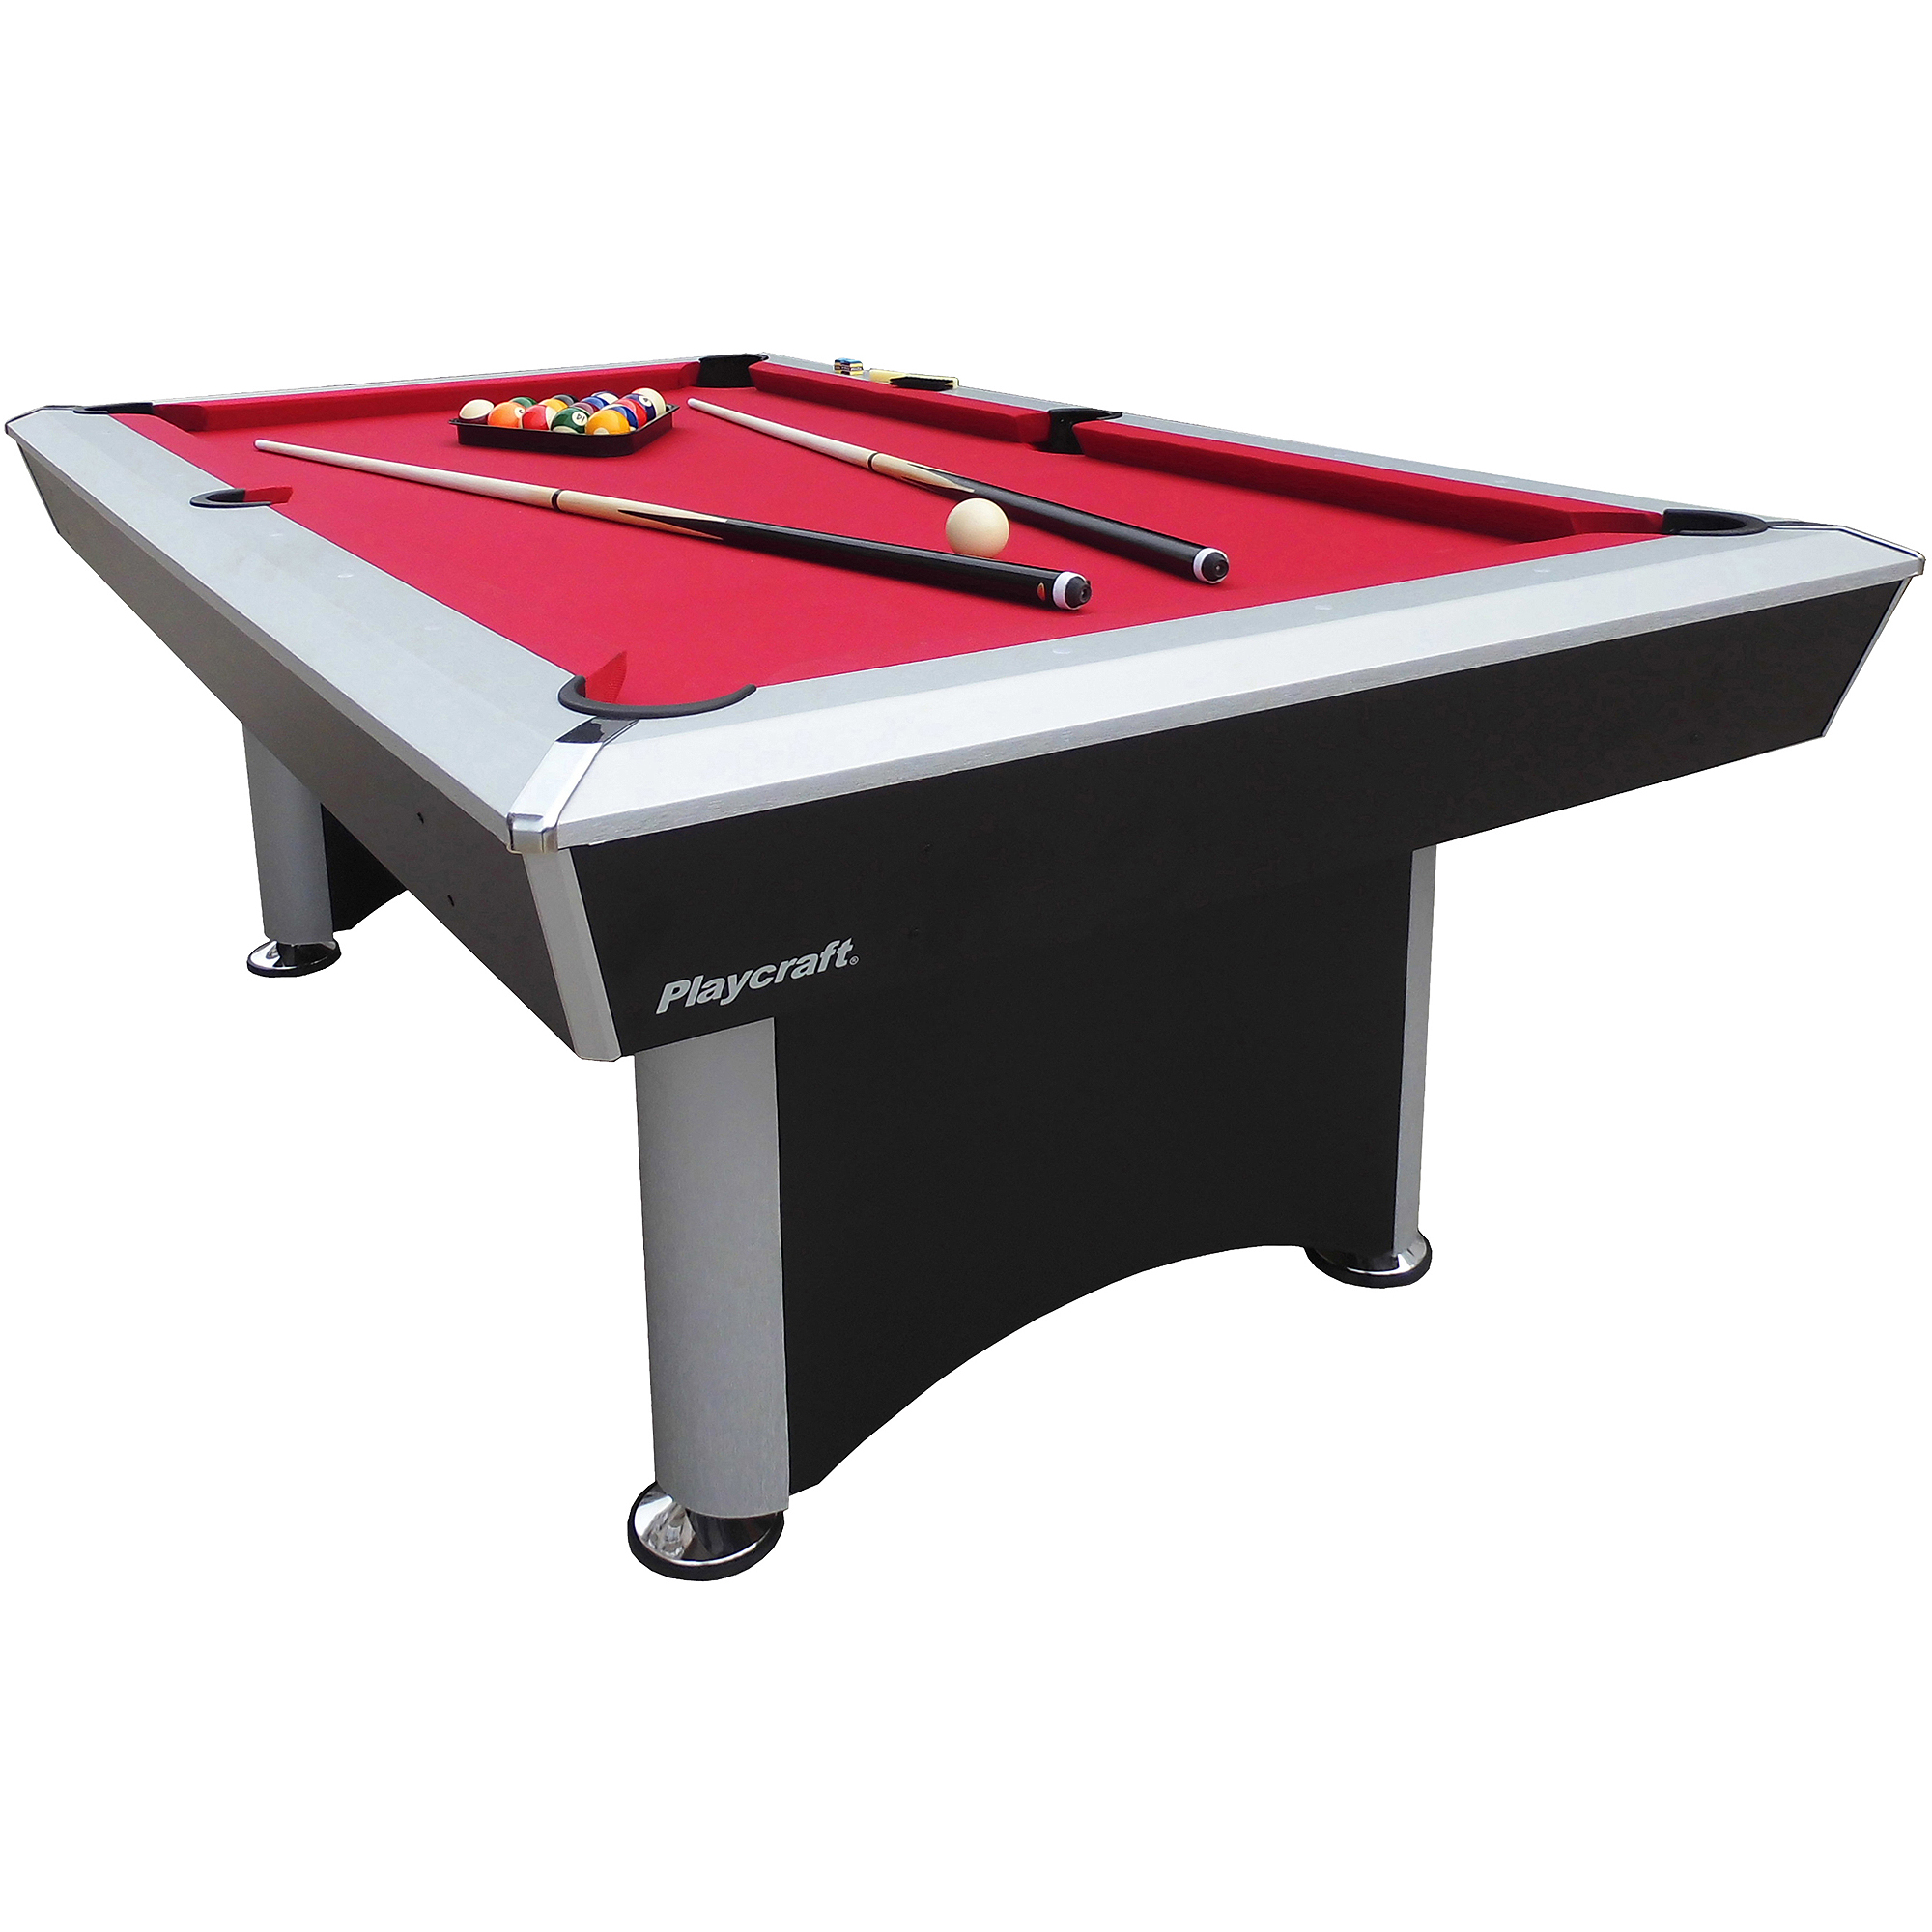 Playcraft 7' Sprint Pool Table with Red Cloth